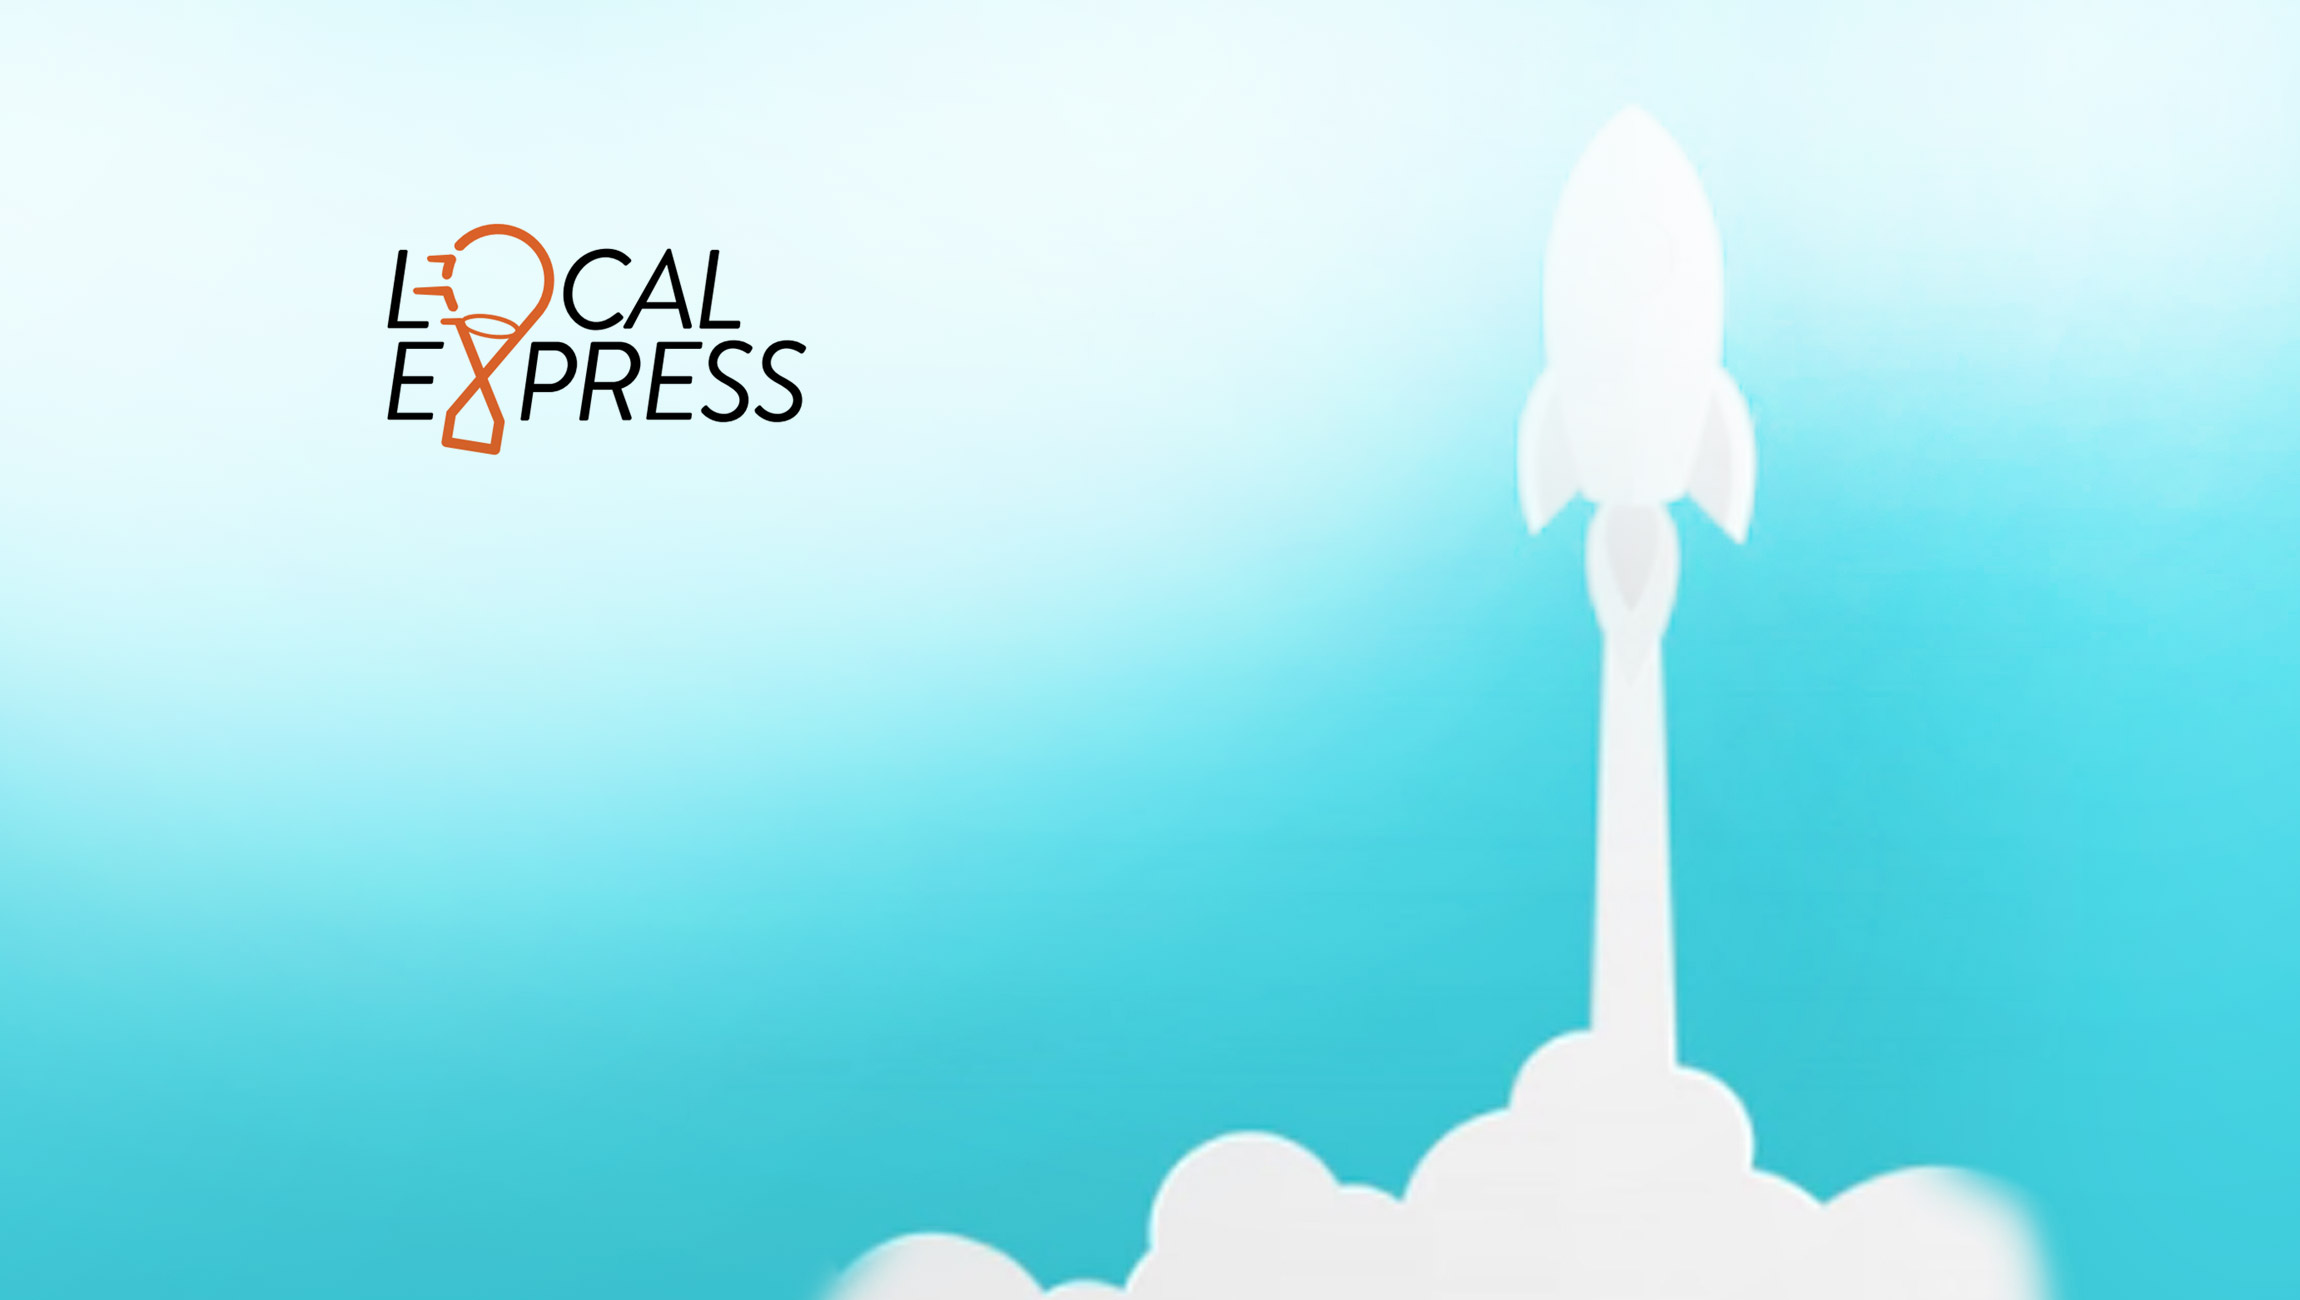 Local Express Launches Kiosk Service to Provide Independent Retailers With In-Store Data-Driven Customer Engagement